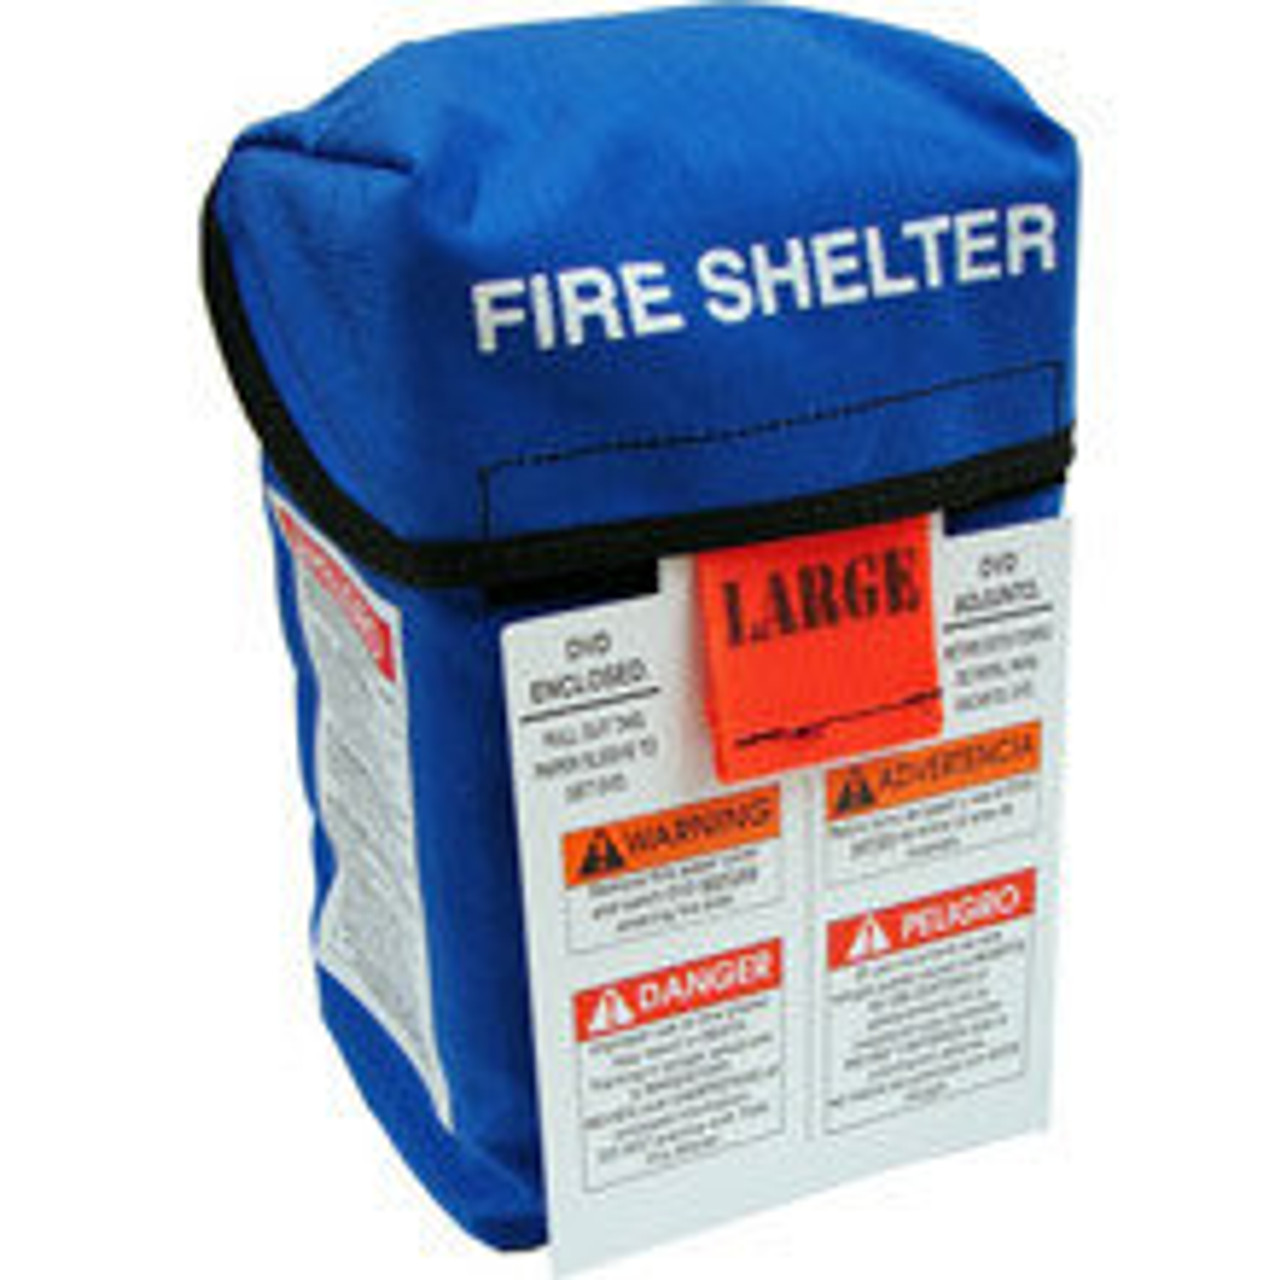 Fire Shelter Large Complete